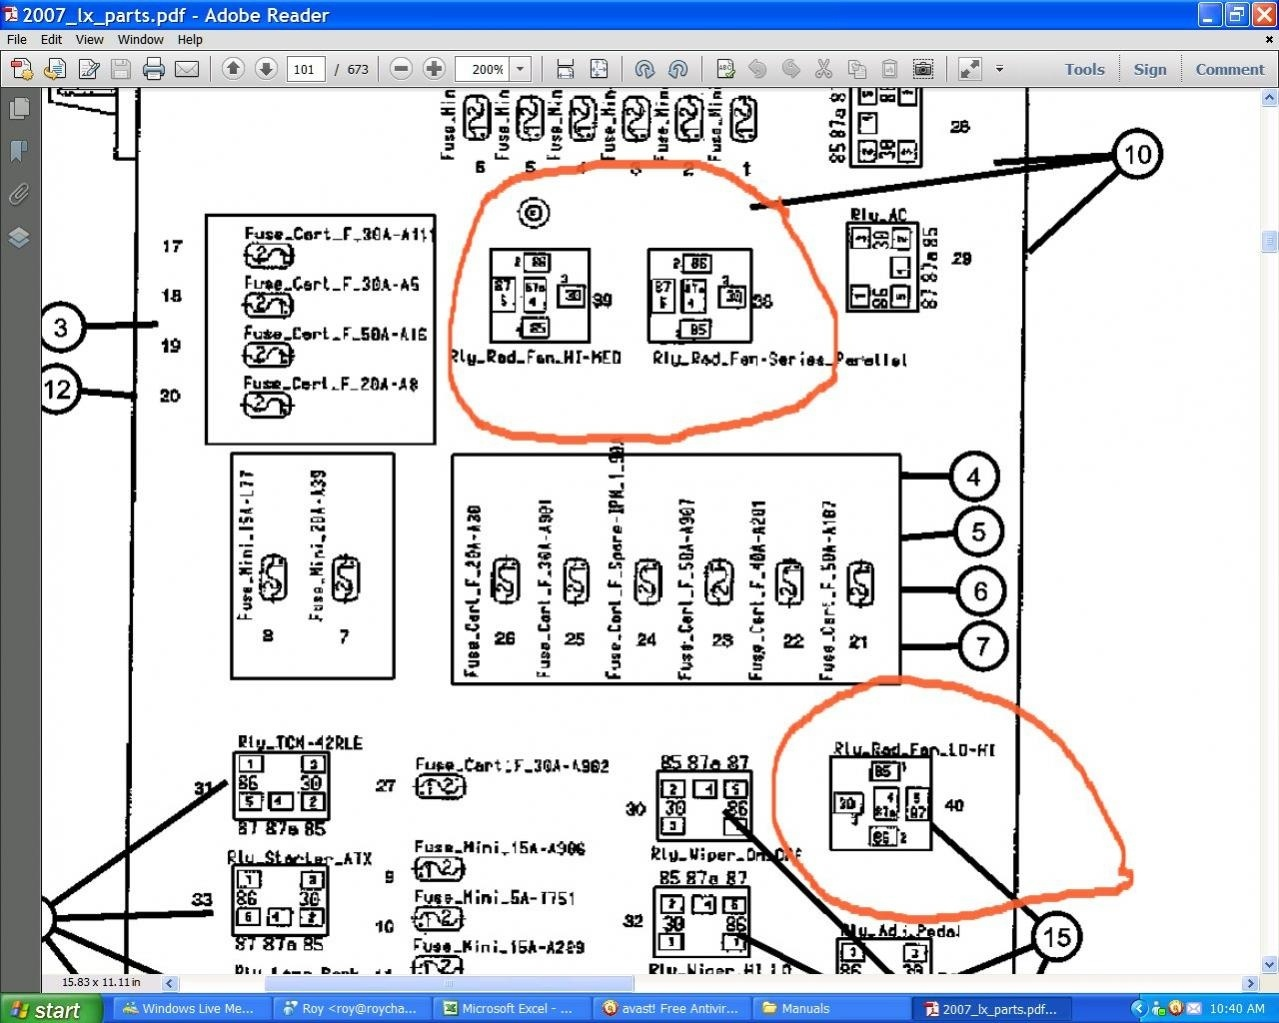 05 chrysler 300 fuse box diagram vortec firing order questions i have a 1280x853 and